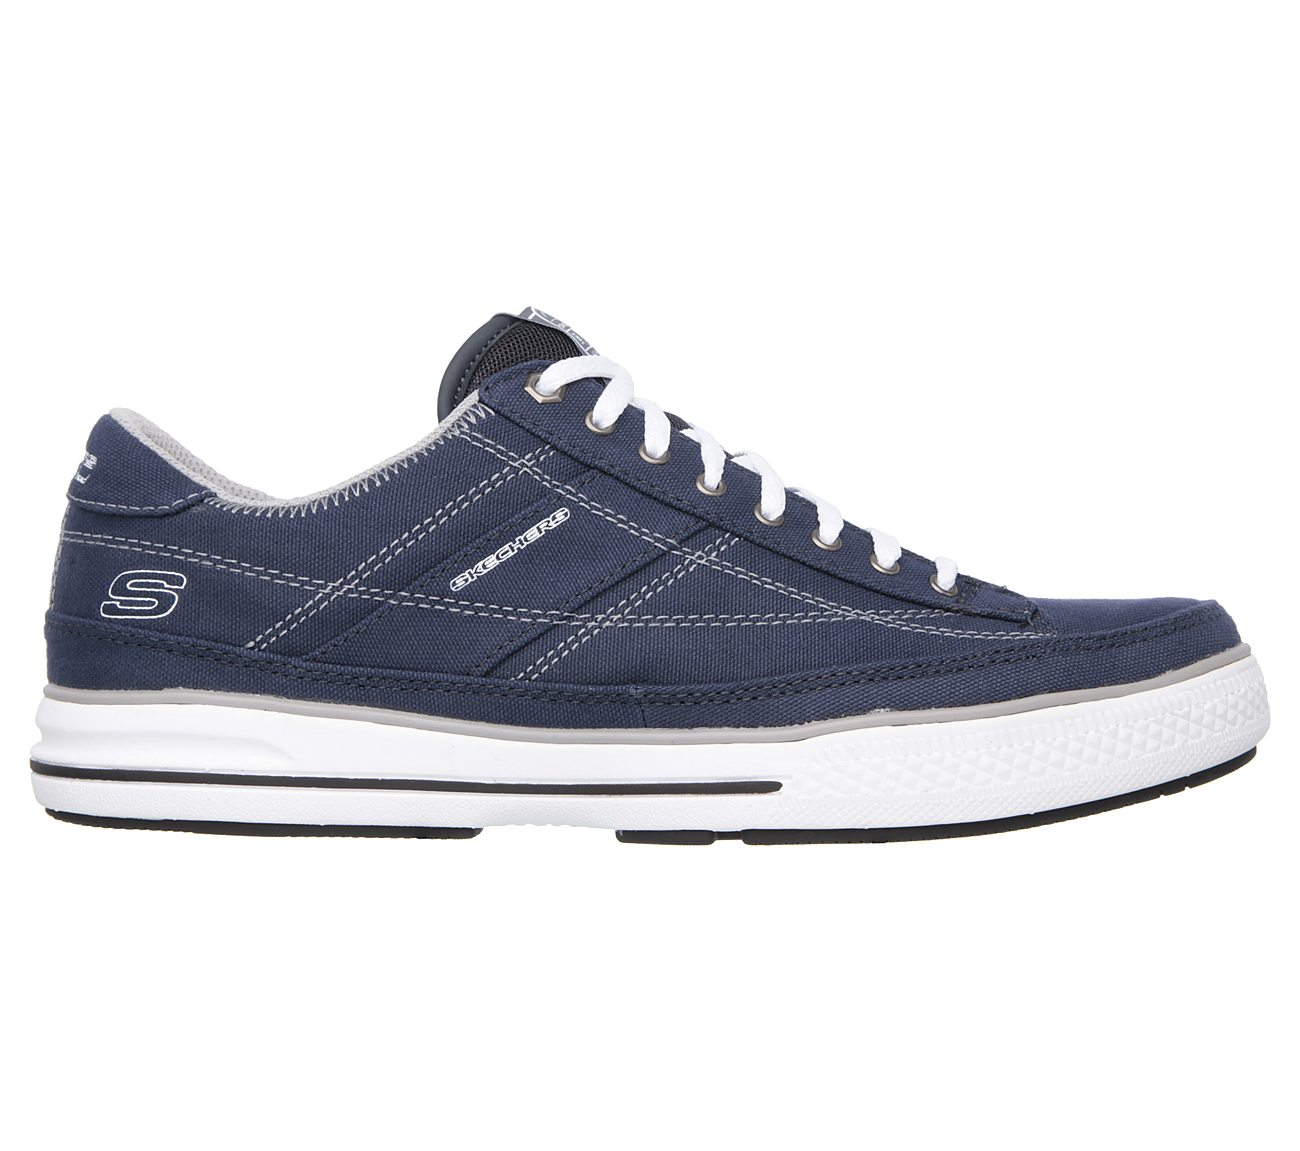 High Quality Skechers Mens Trainers Arcade Chat Mf 51014 46ZPo